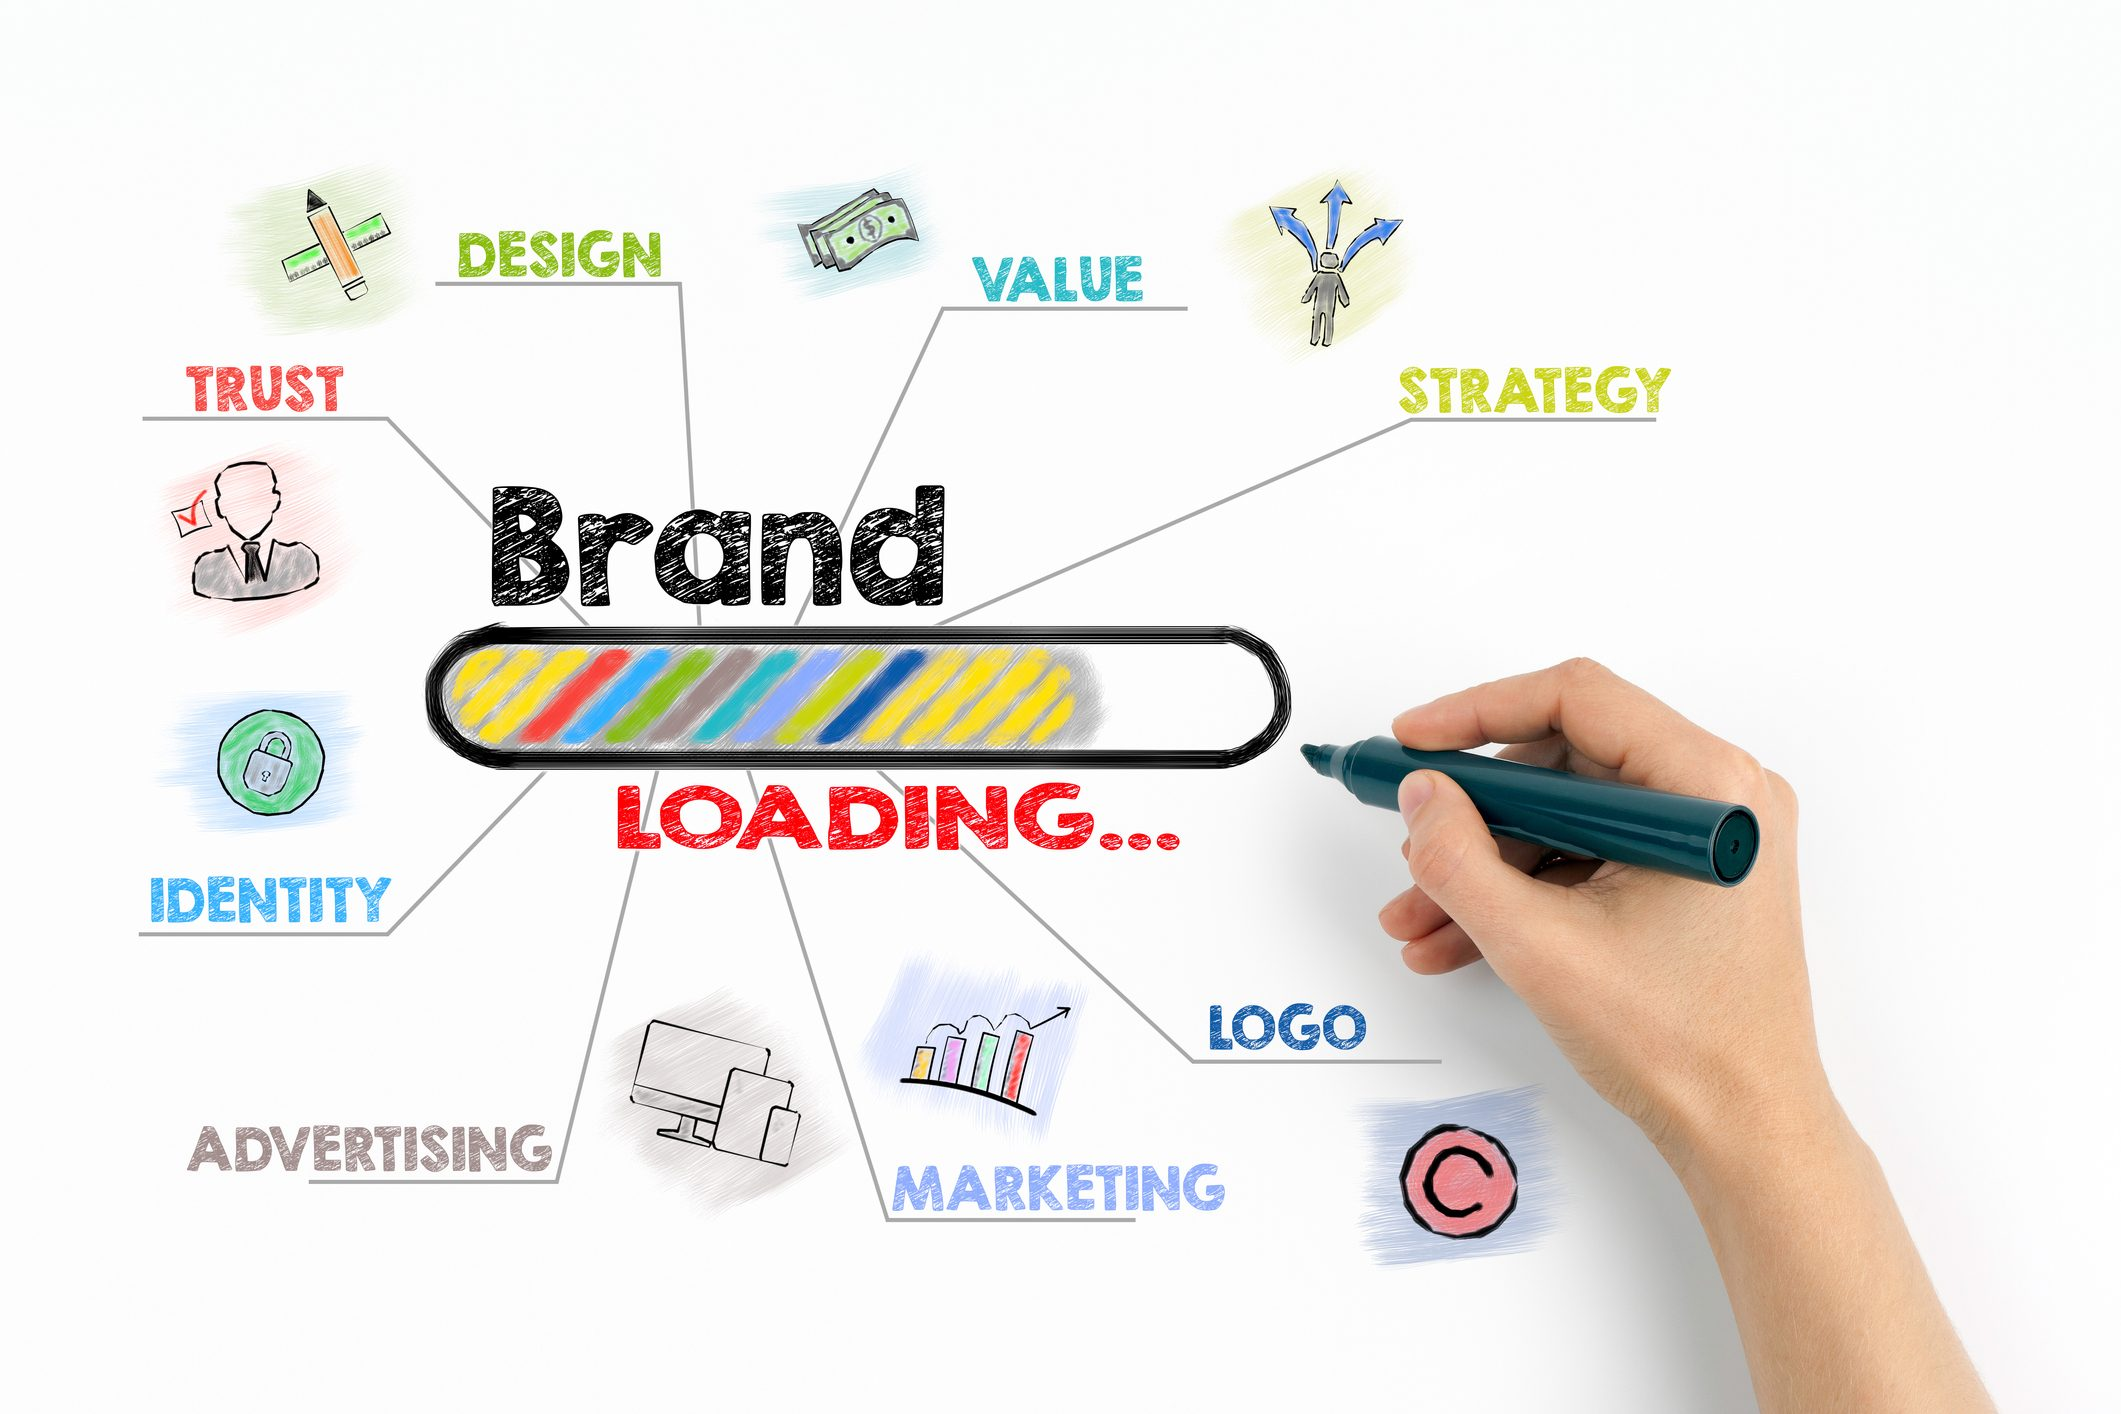 Marketing and Branding. What's the difference?